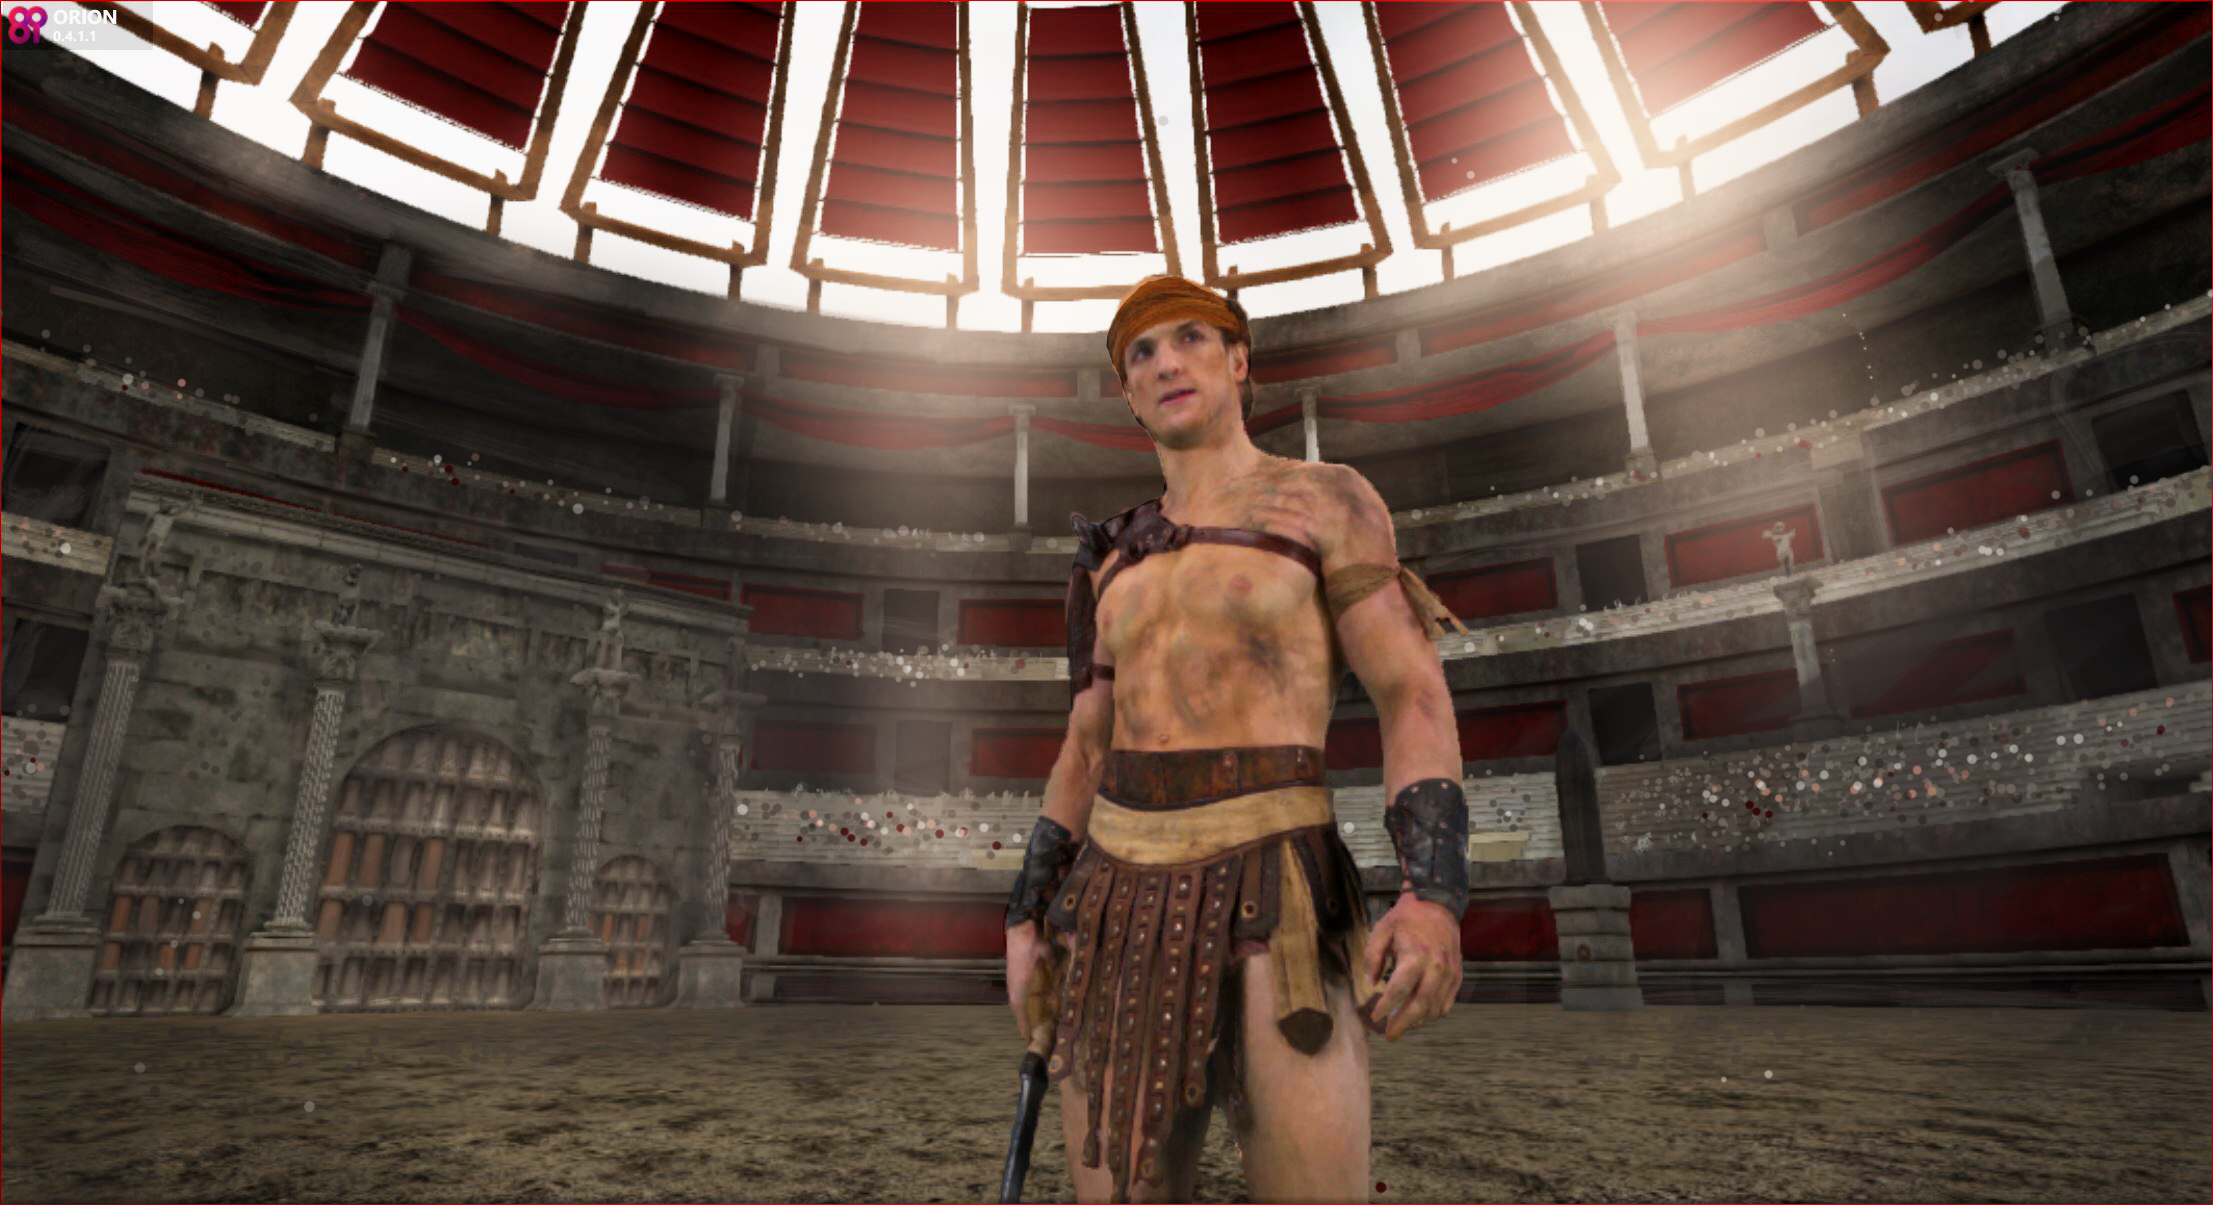 Logan Paul as a gladiator in the Colosseum. A scene from #100humans VR project, premiering at the 2016 Sundance Film Festival